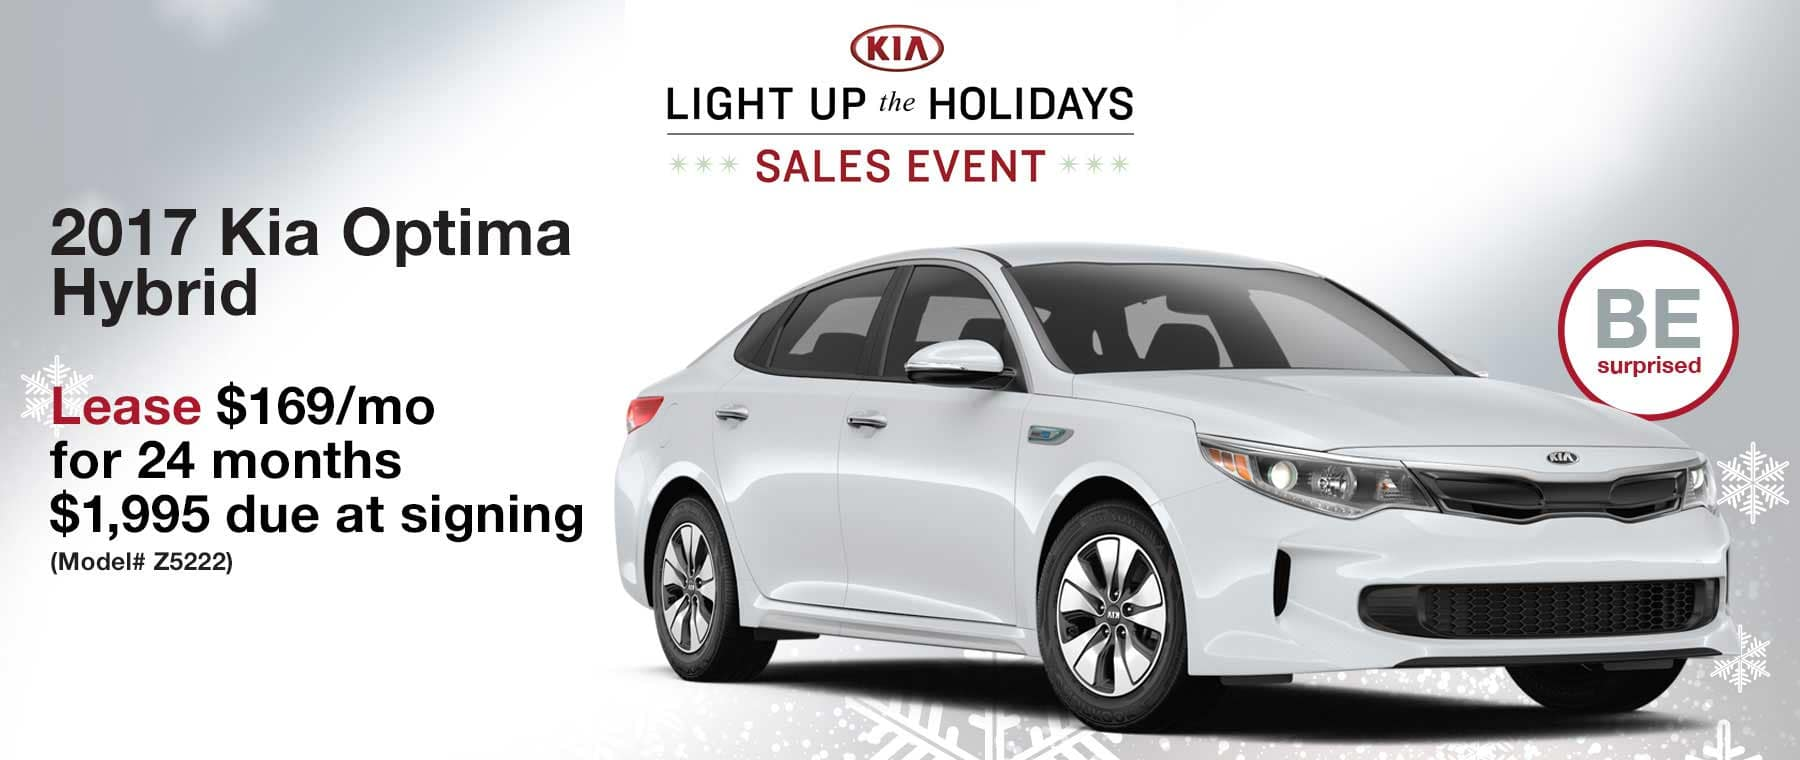 Lease a 2017 Optima Hybrid for $169 per month with $1,995 due at signing.